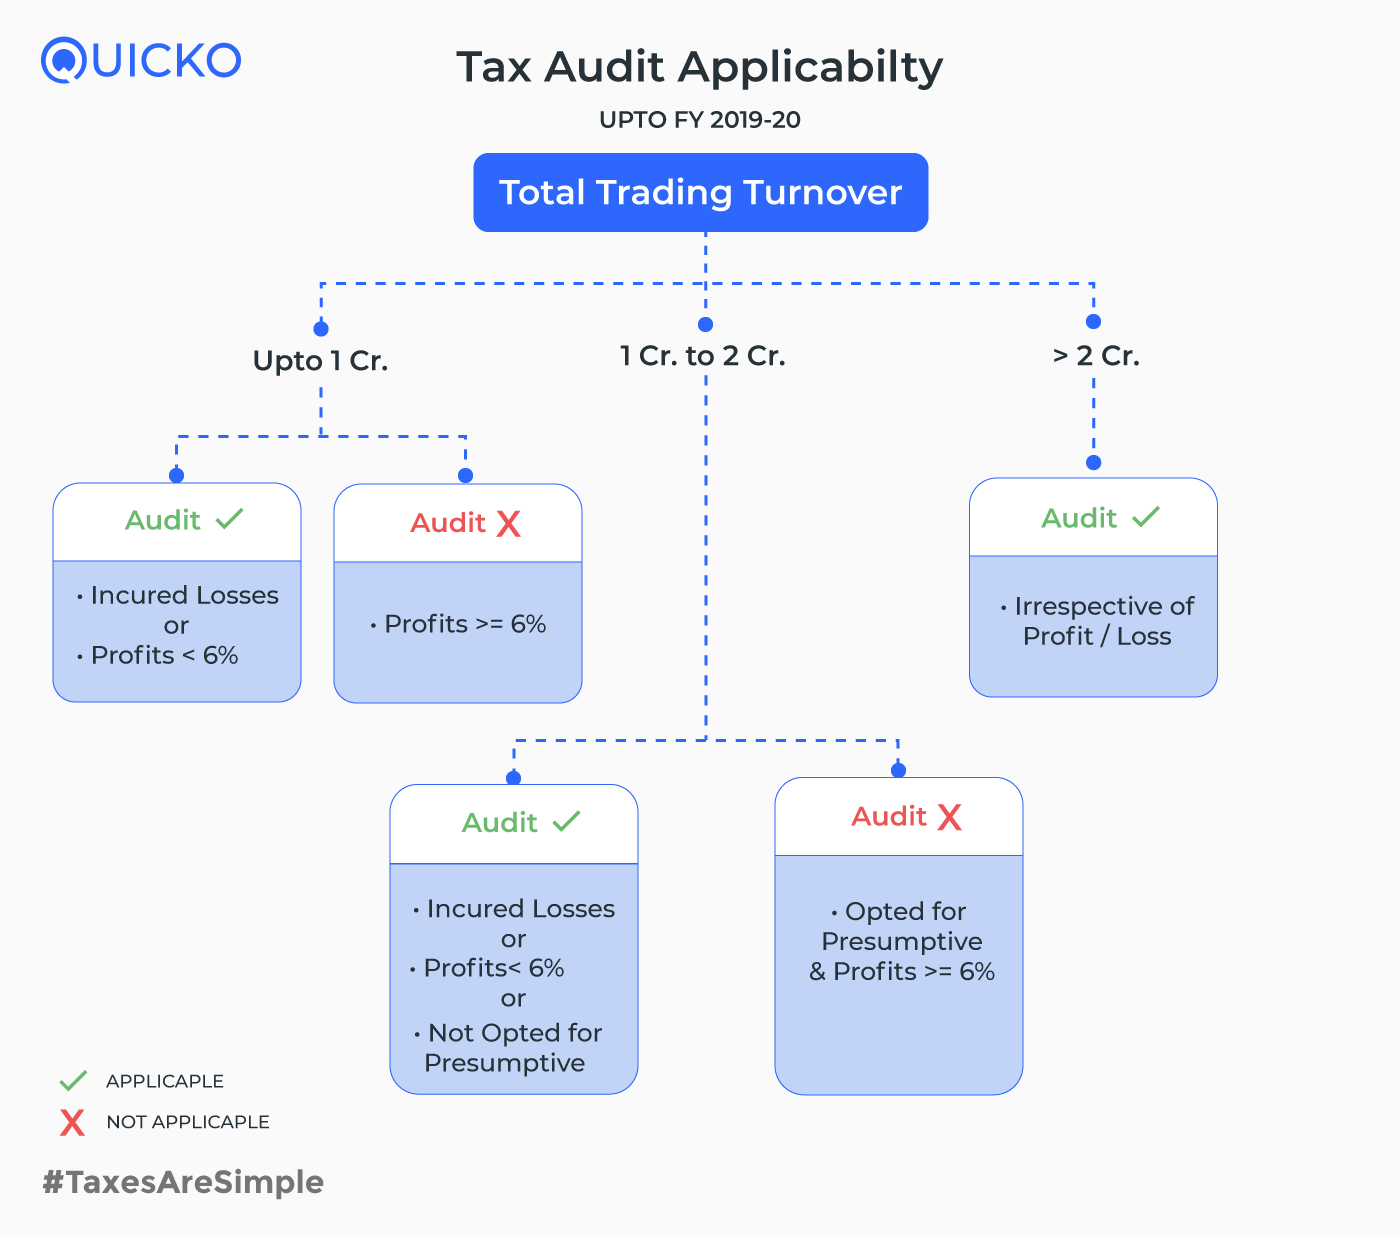 Tax-audit-applicability upto FY 2019-20